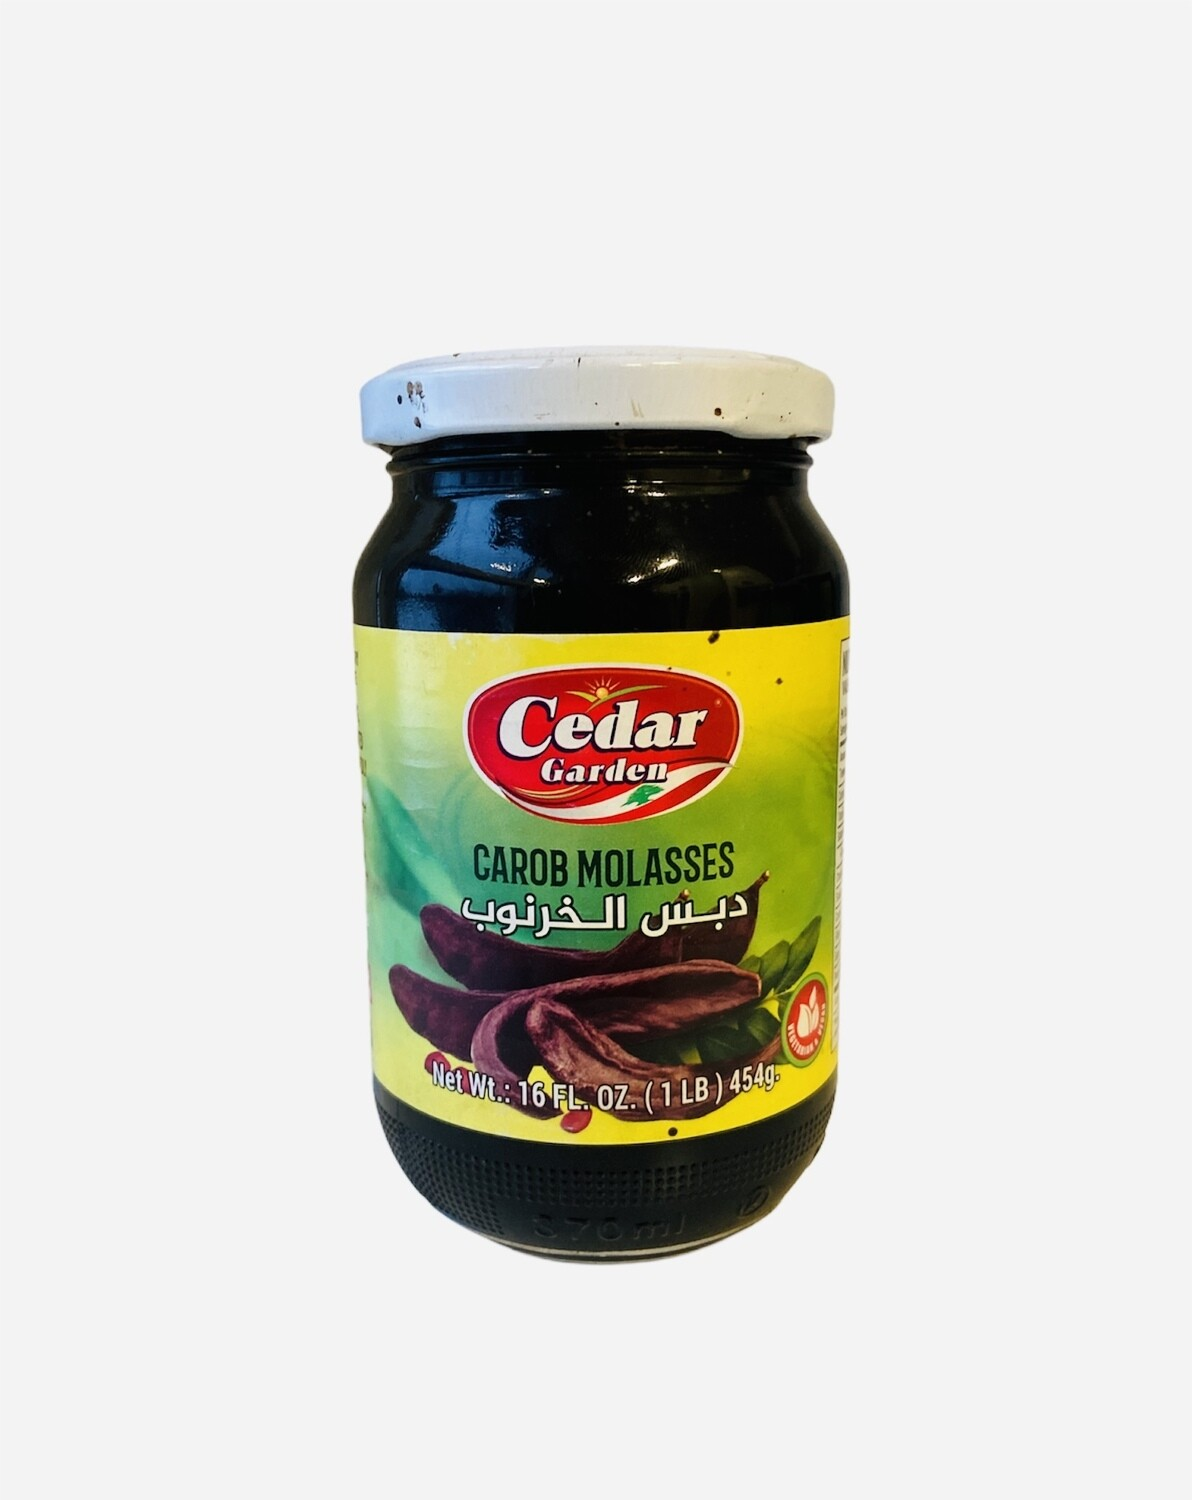 Cedar Garden Carob Molasses 12x1lb